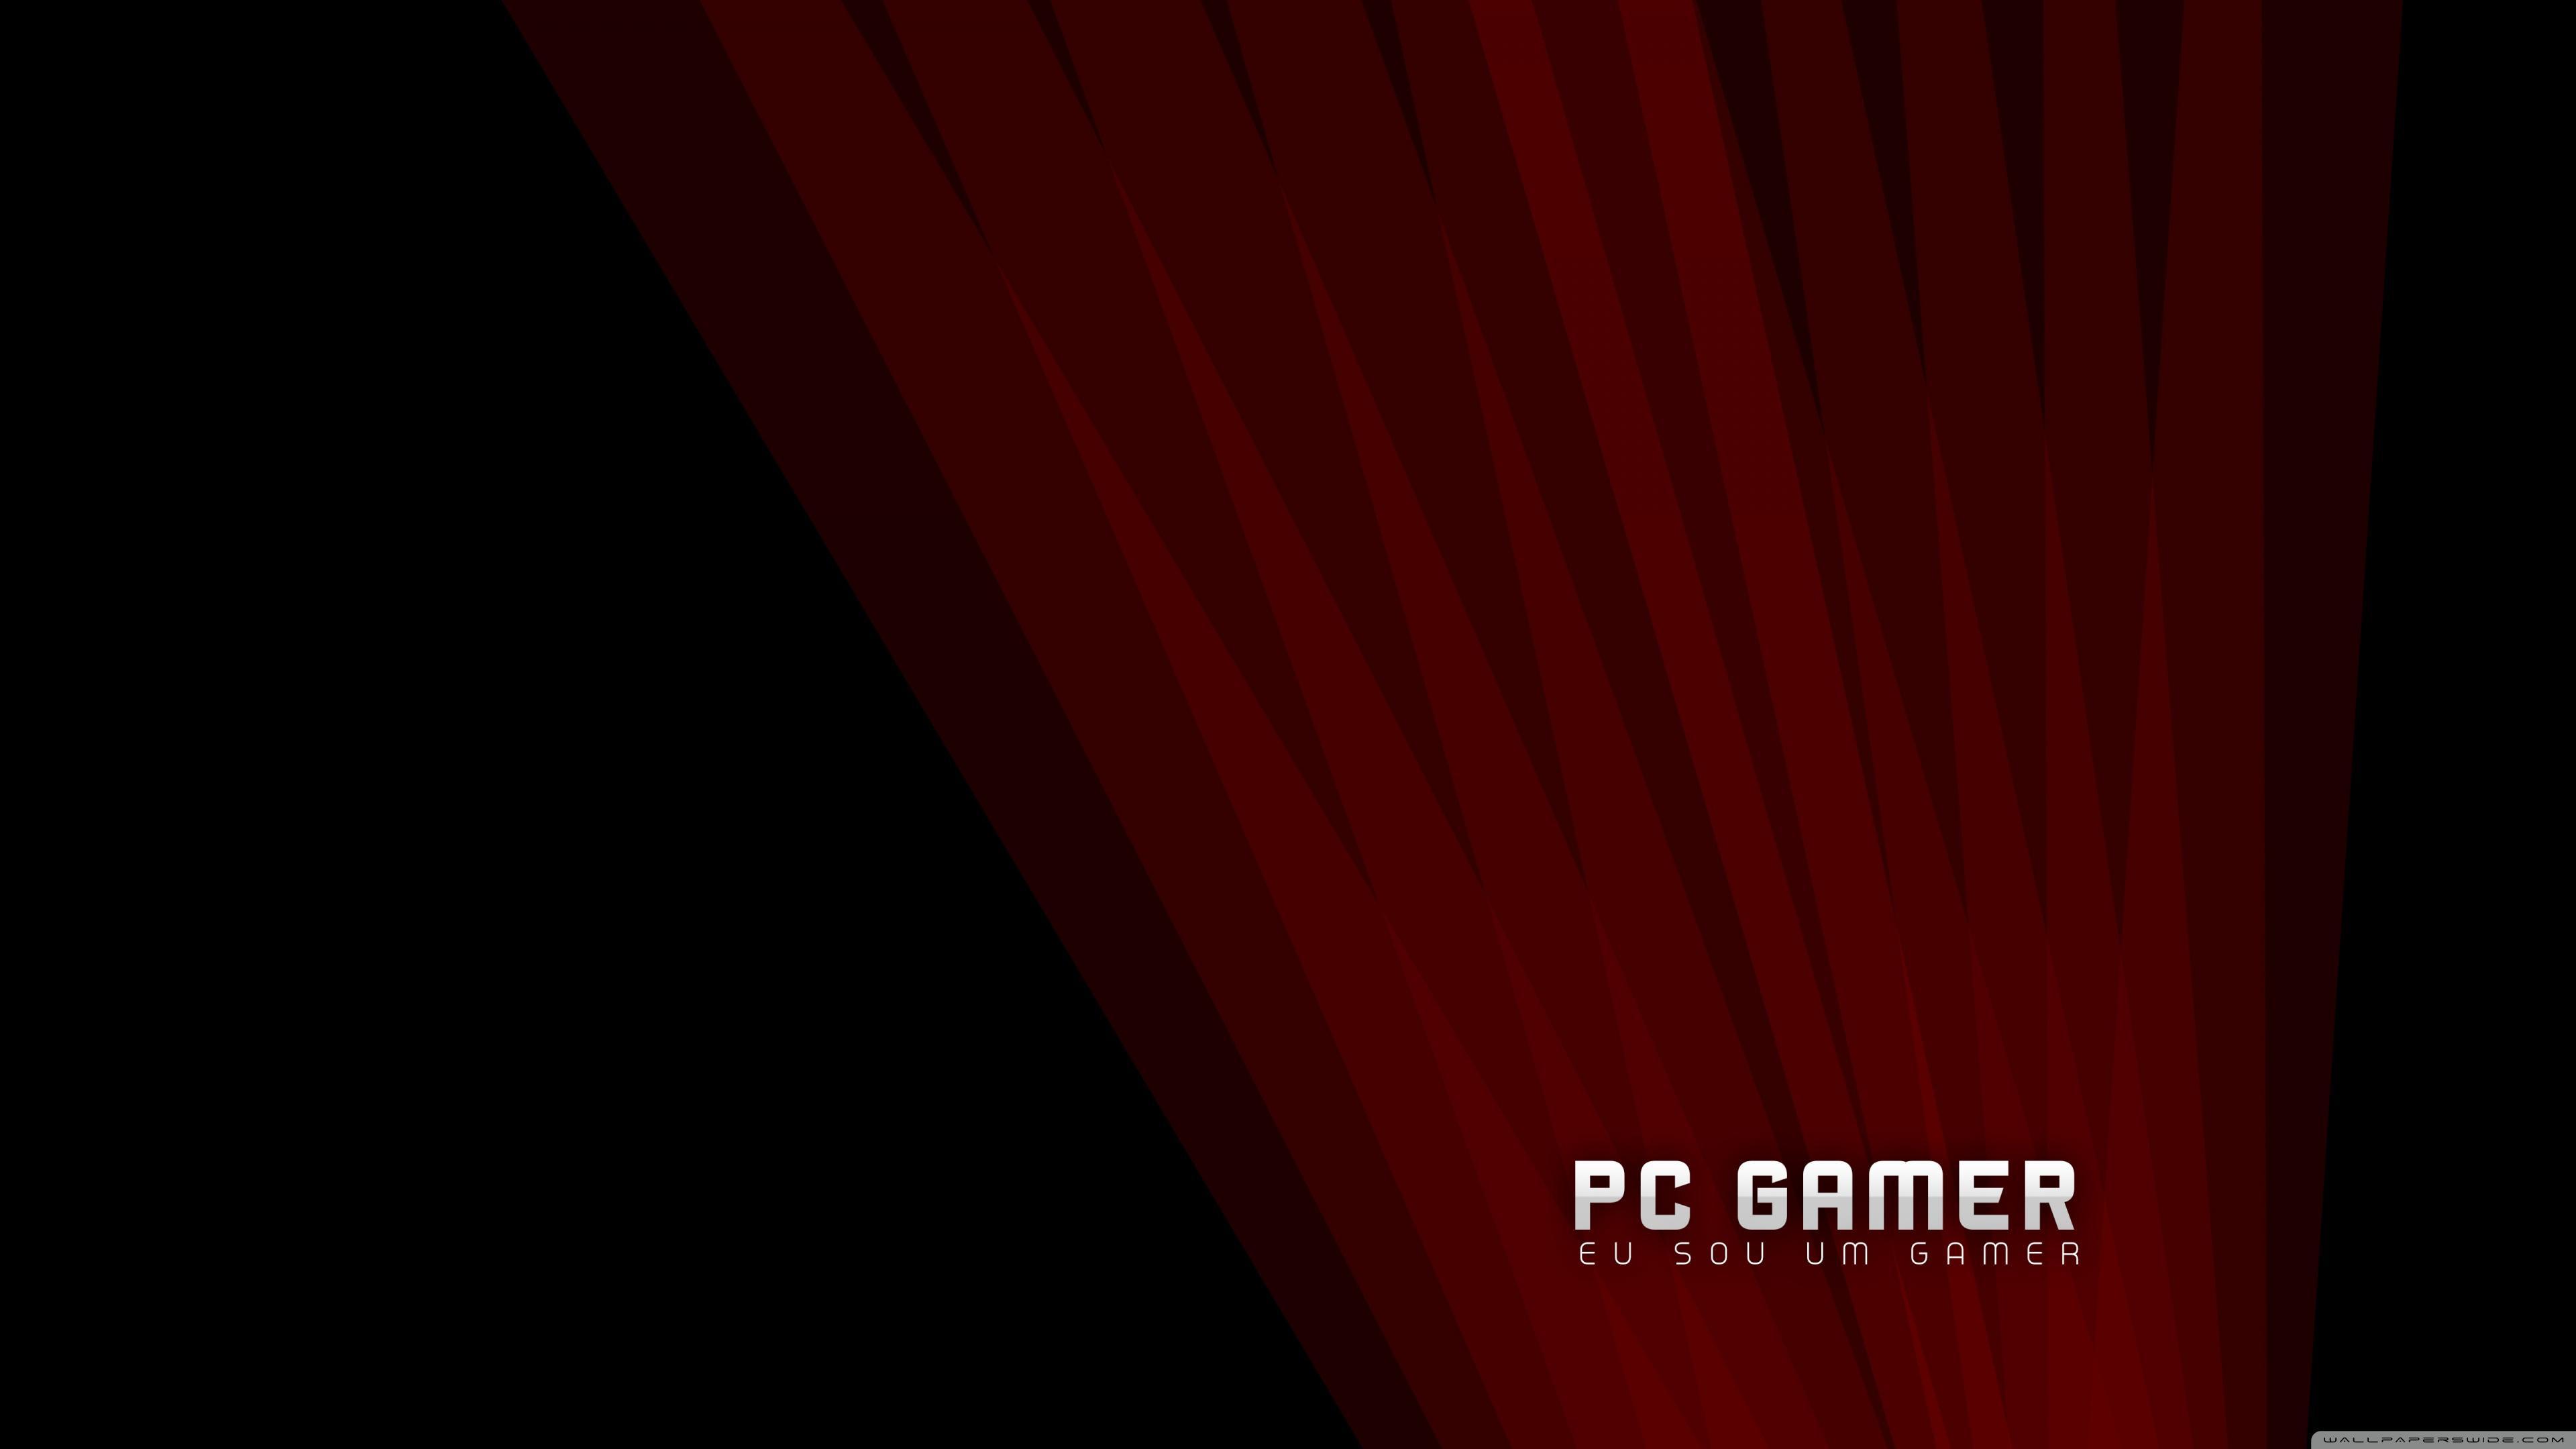 Download 83 Koleksi Wallpaper Hd Pc Gaming Gratis Terbaru